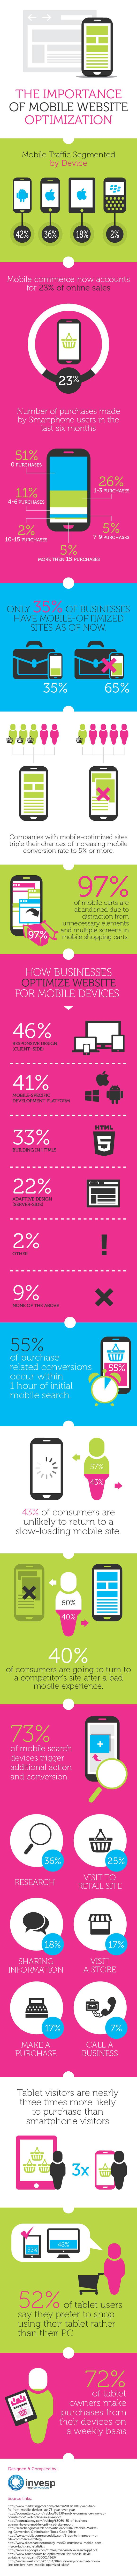 How Important is Mobile Website Optimization in 2014 [INFOGRAPHIC]